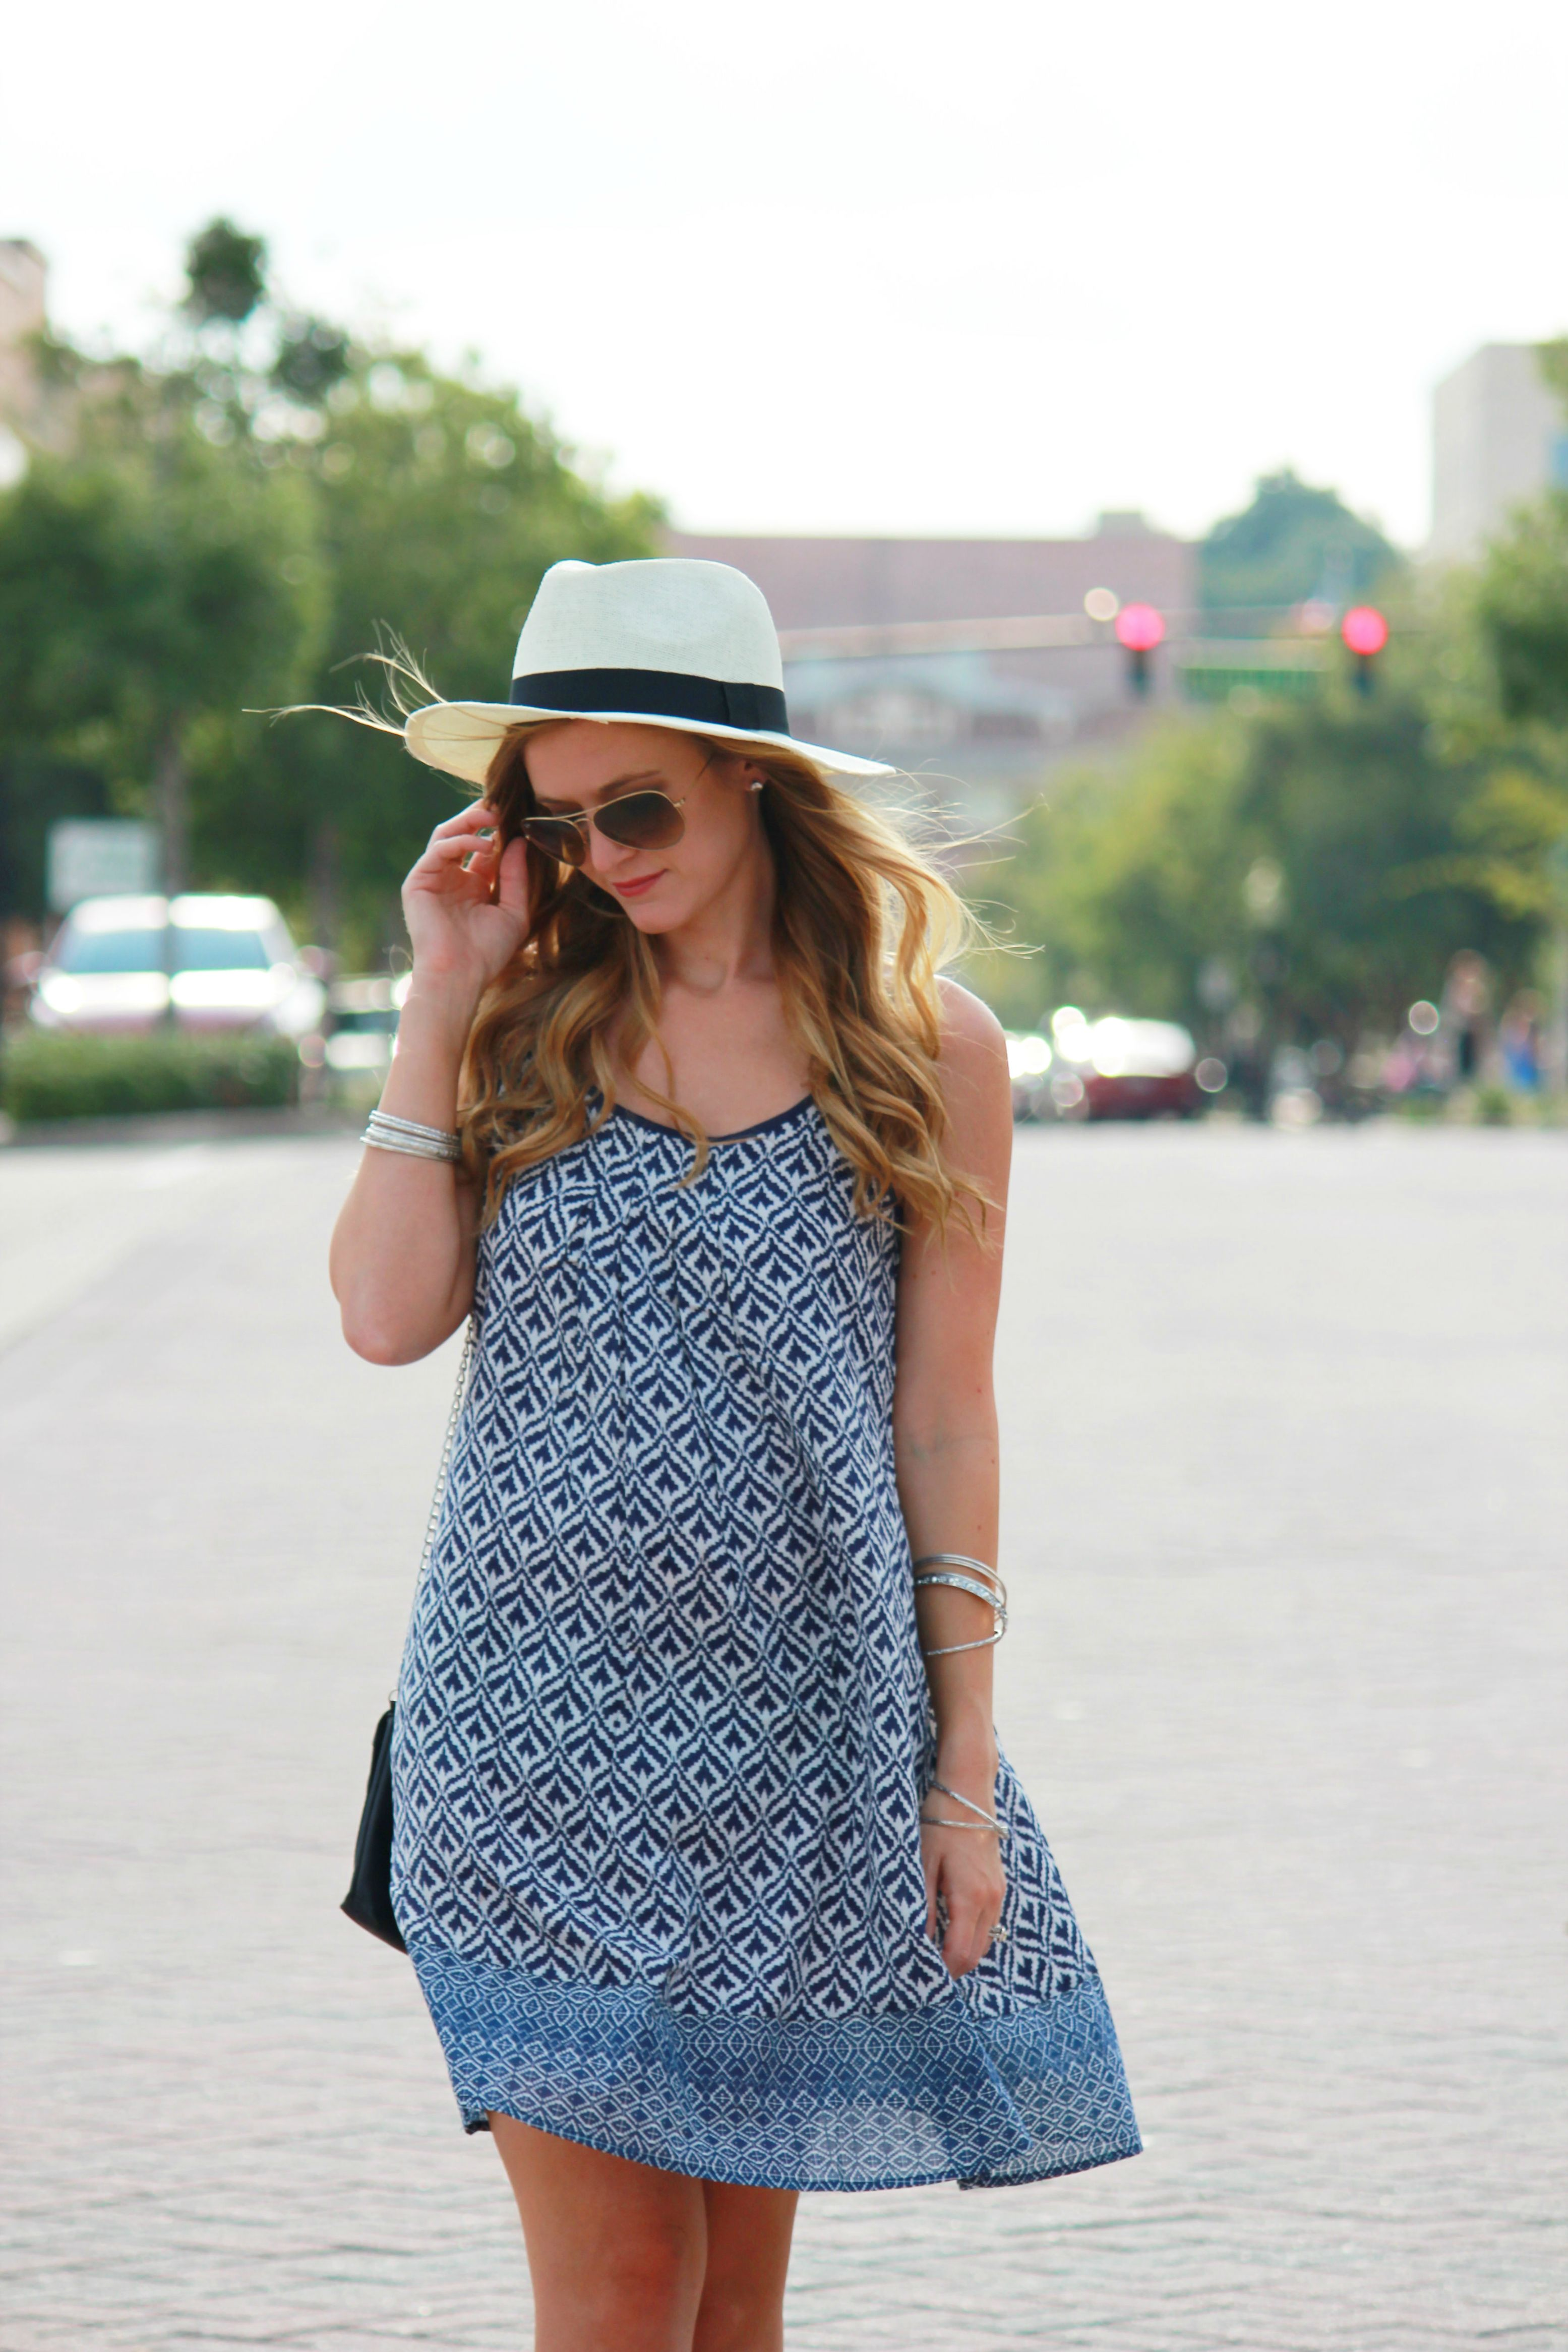 bleue boutique dress, tribal print dress, windsor hat, knee gladiator sandals, silver gladiator sandals, casual summer outfit, casual street style, street fashion,